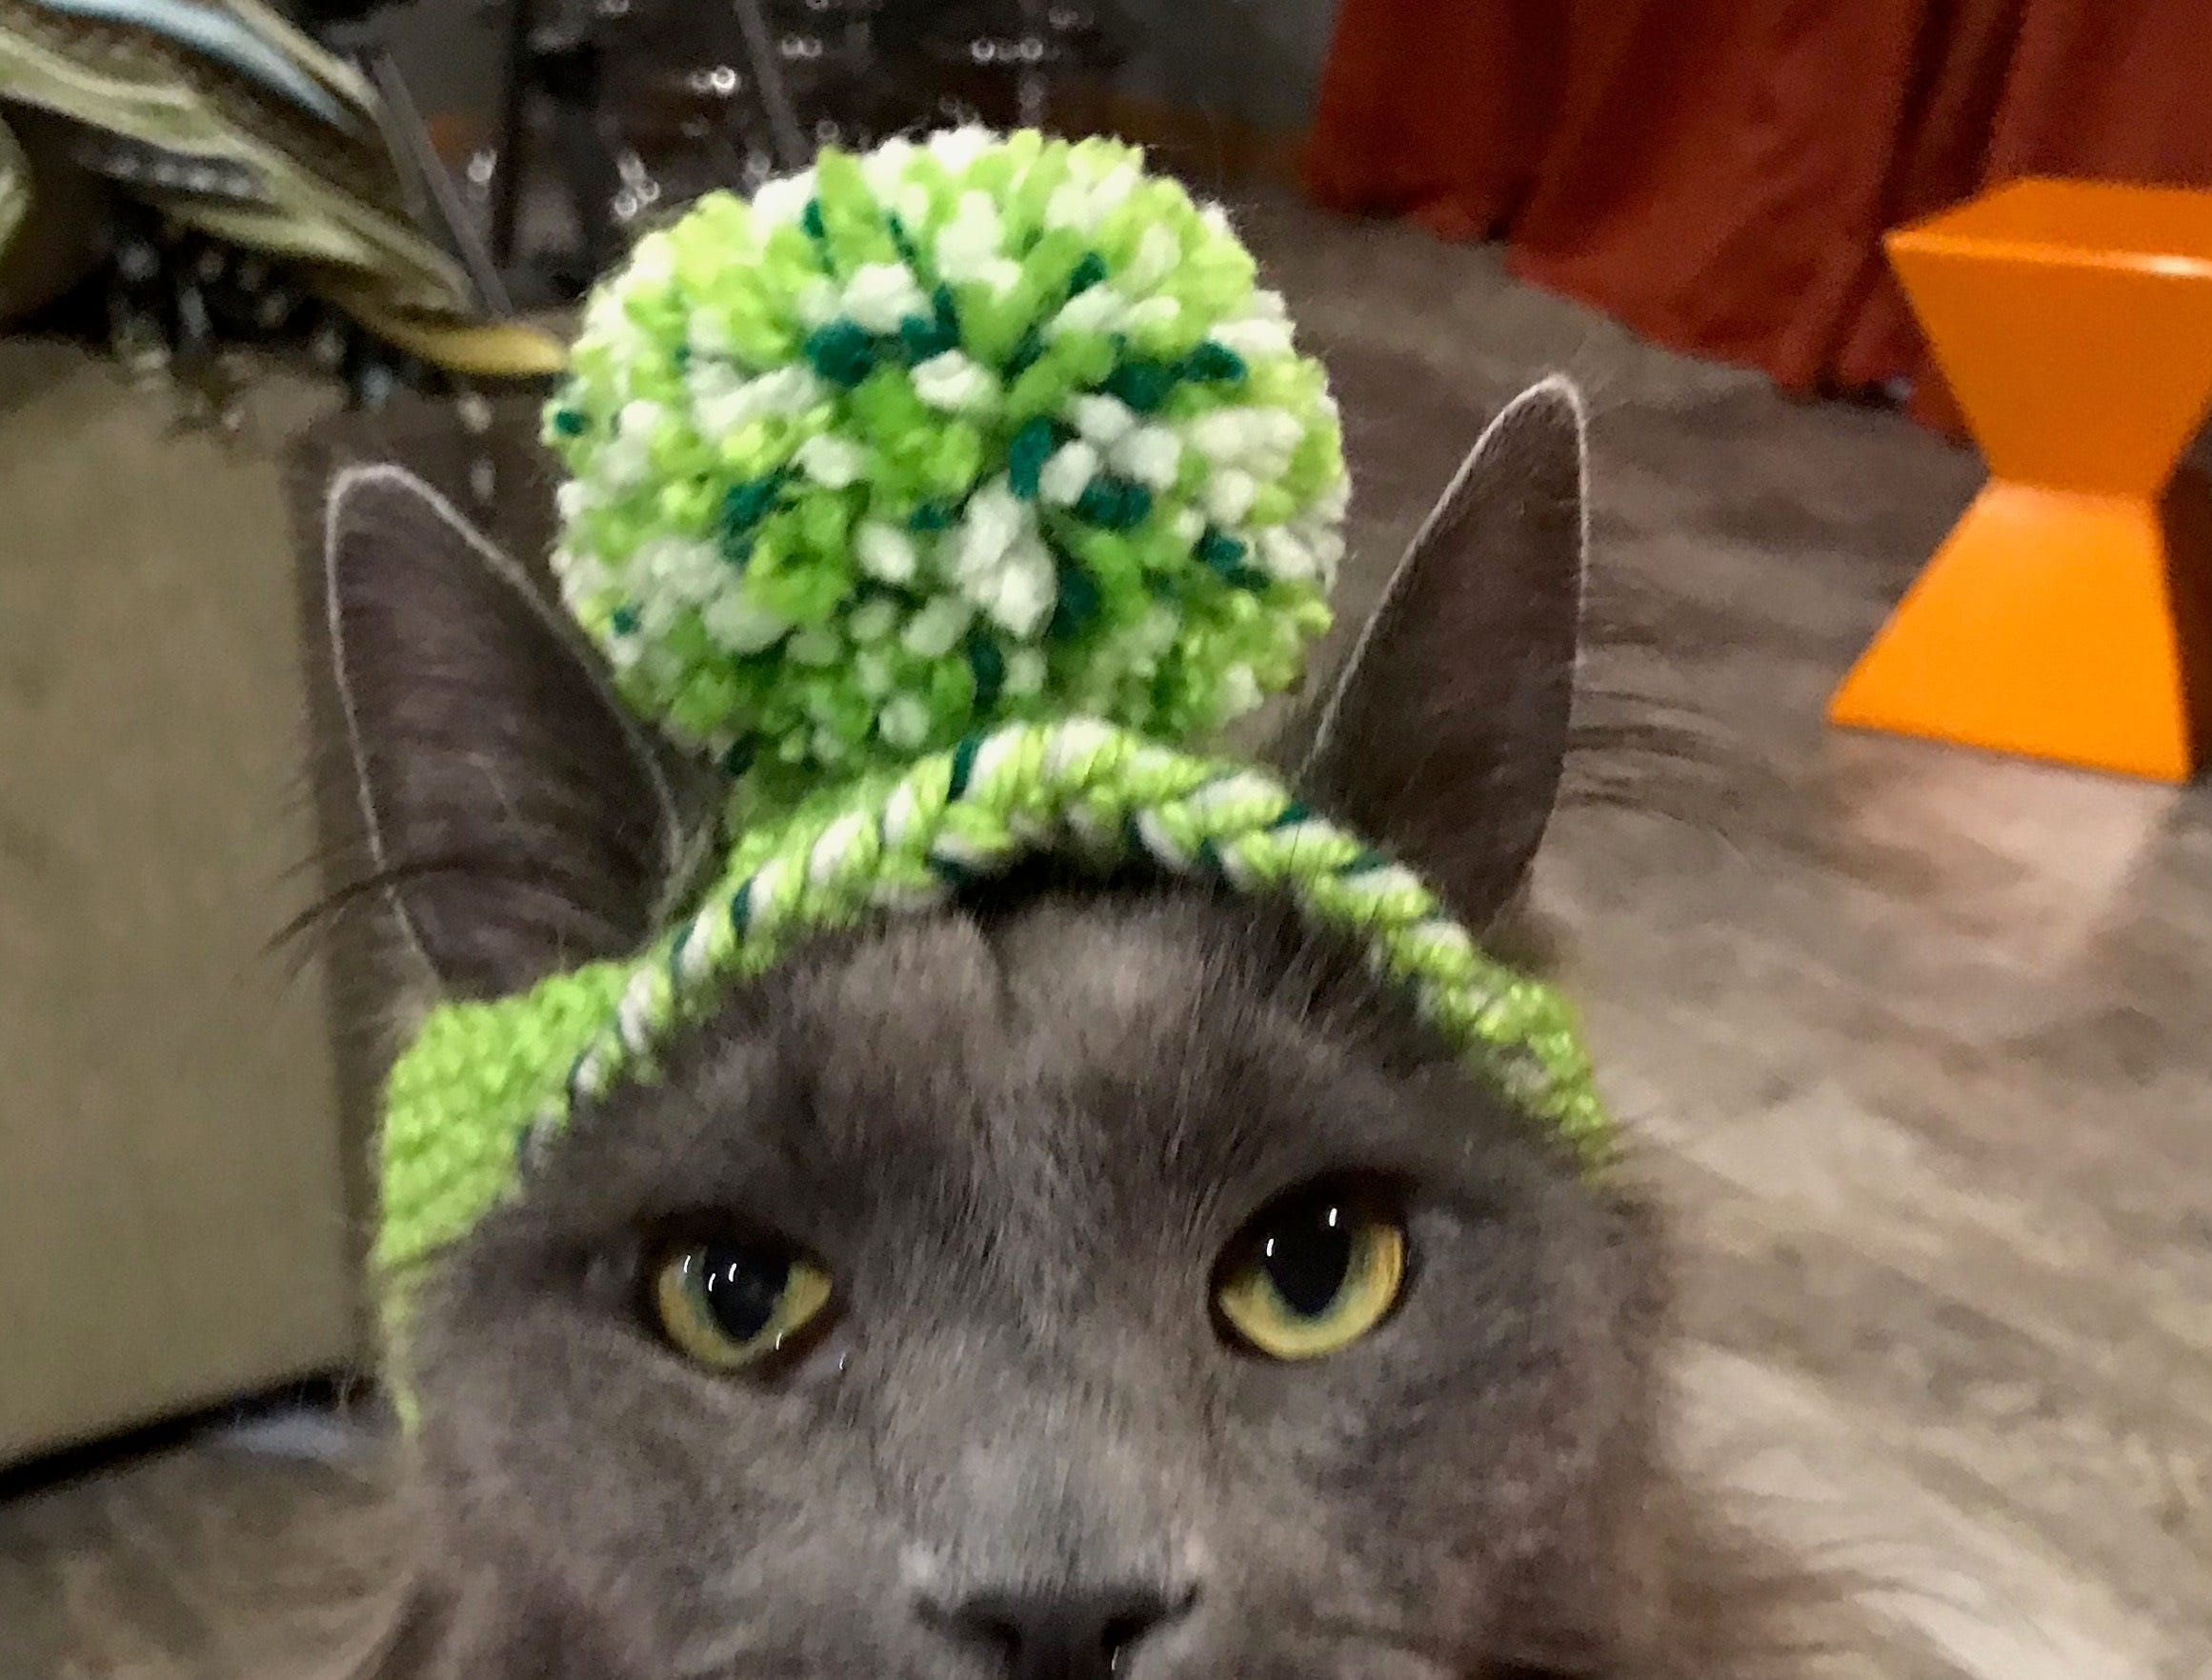 """Jennie Gresham knits """"Cat Hats"""" for friends, family and by request, asking only that recipients donate to the Maclean Animal Adoption Center in return.  Owners take photos and send their cats' """"comment"""" on the hat.  Grizwold doesn't have much to say."""